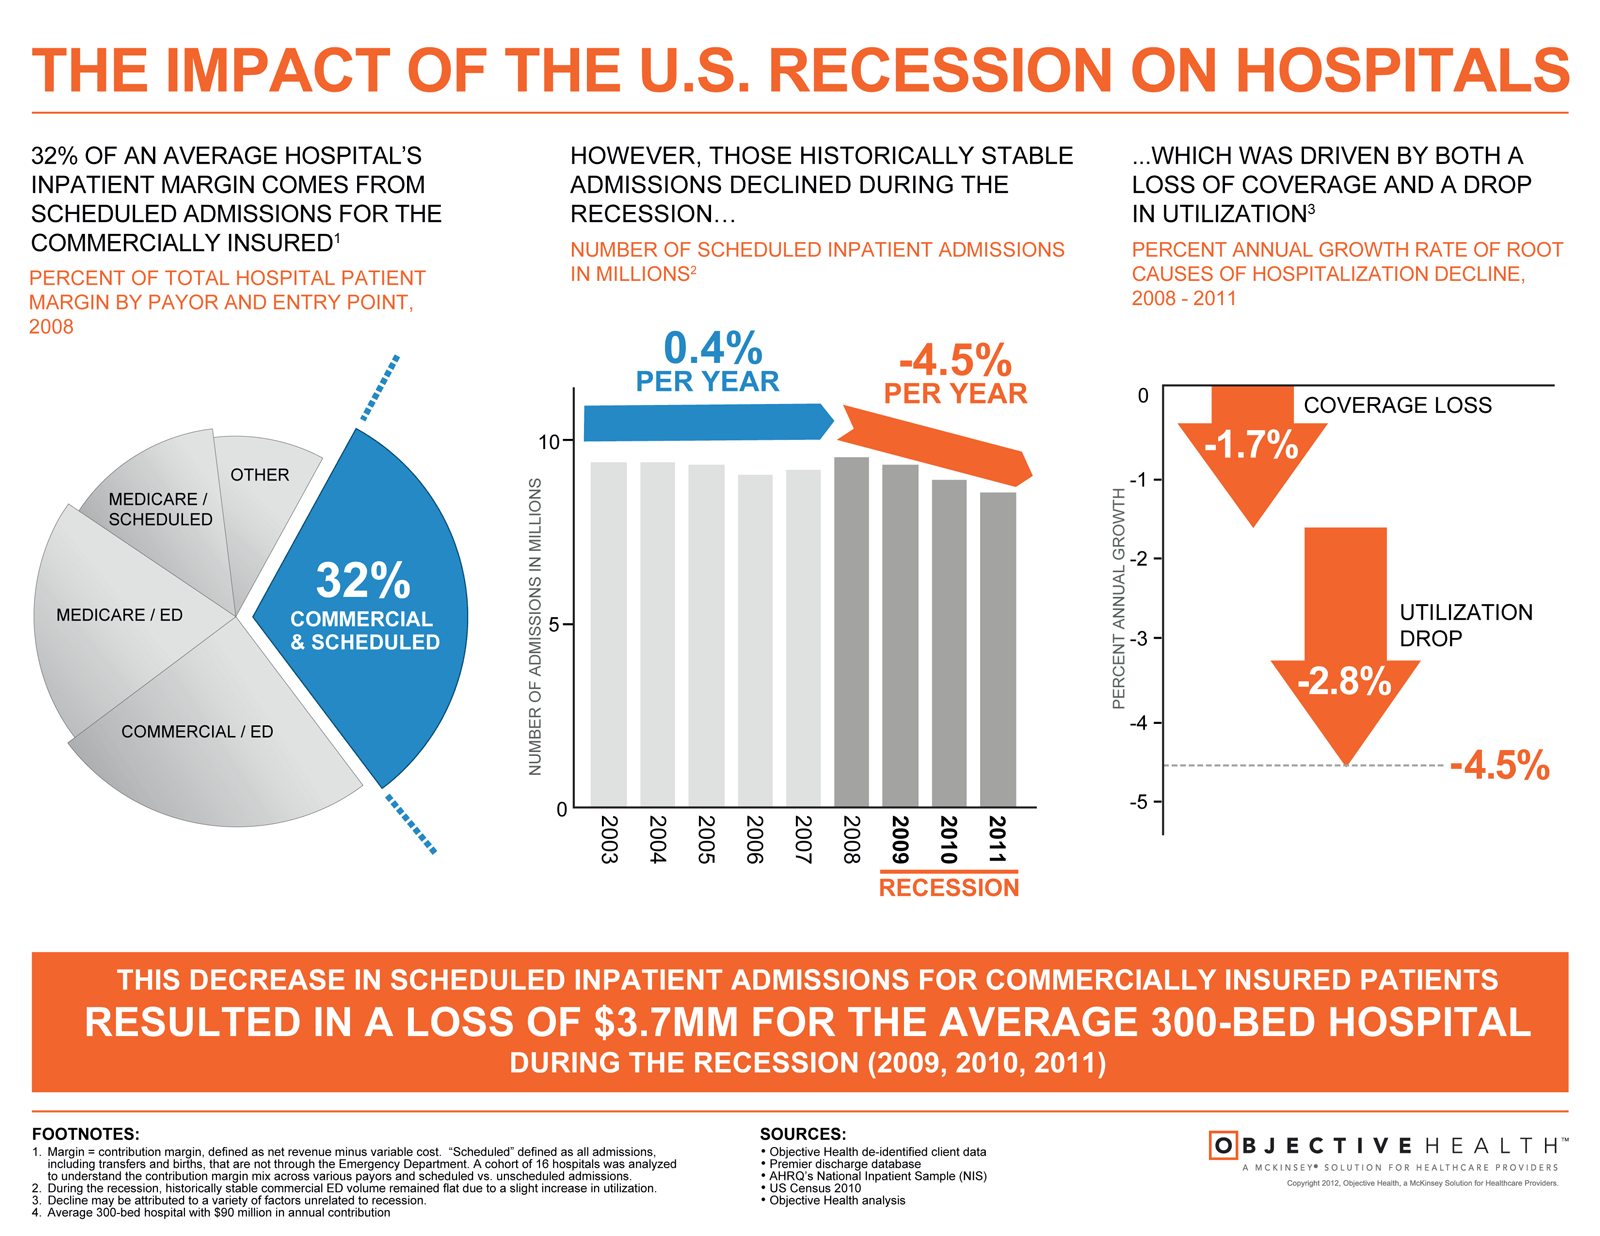 impact-of-us-recession-on-hospitals_50a2d3c79e675